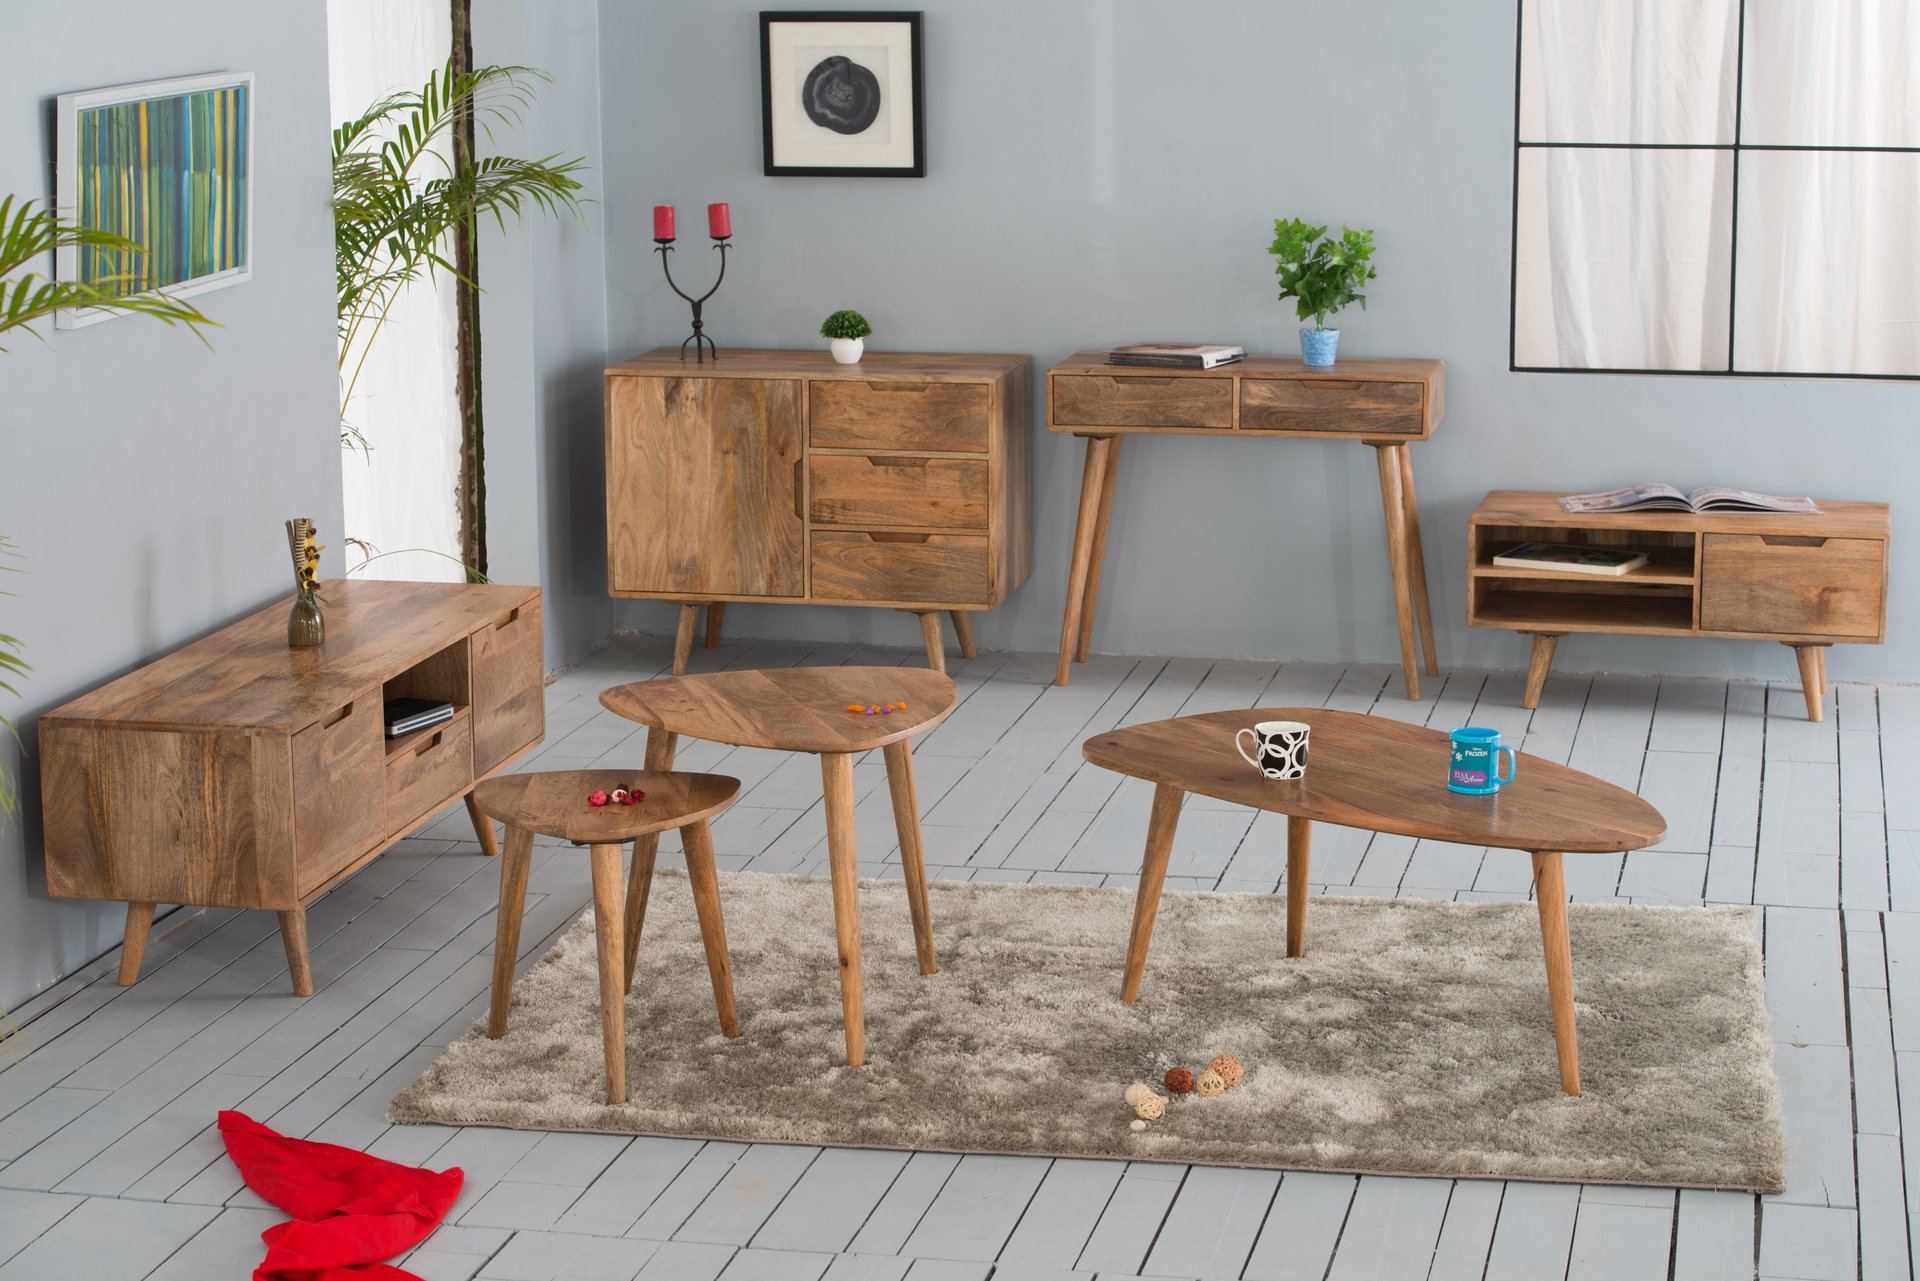 Pine Living Room Furniture Sets: Pine Furniture For Your Bedroom, Living Room And Office